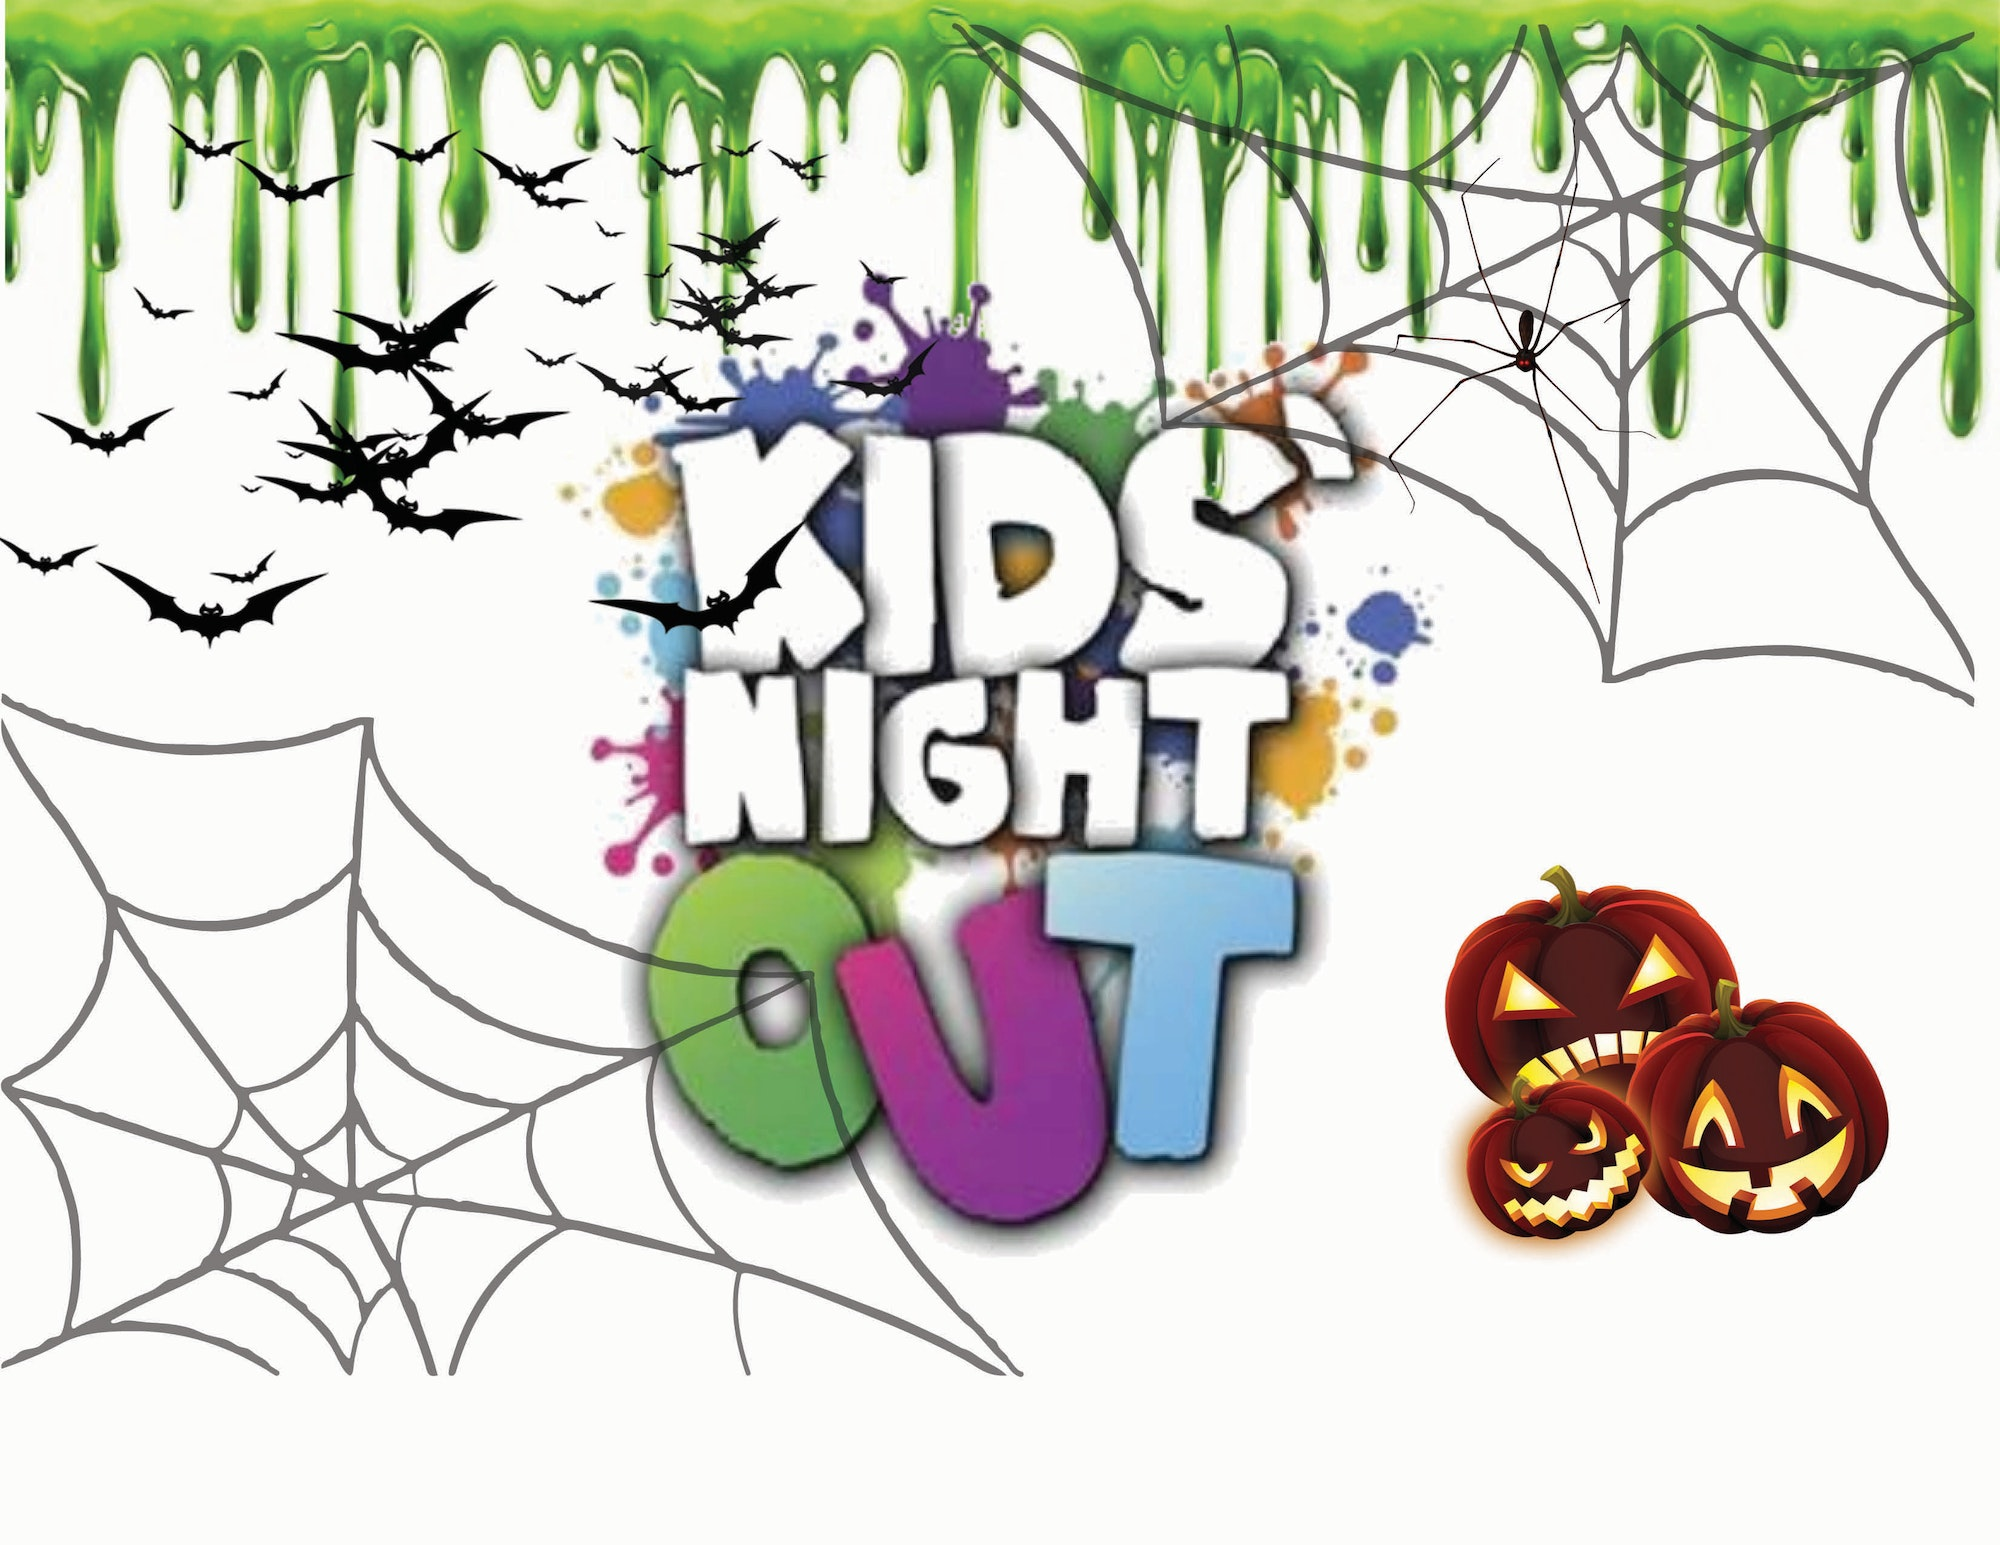 It S Friday Night And Your Kids Want Something Fun To Do Sign Them Up For Our Kid Out Program Where They Will Get A Chance Play